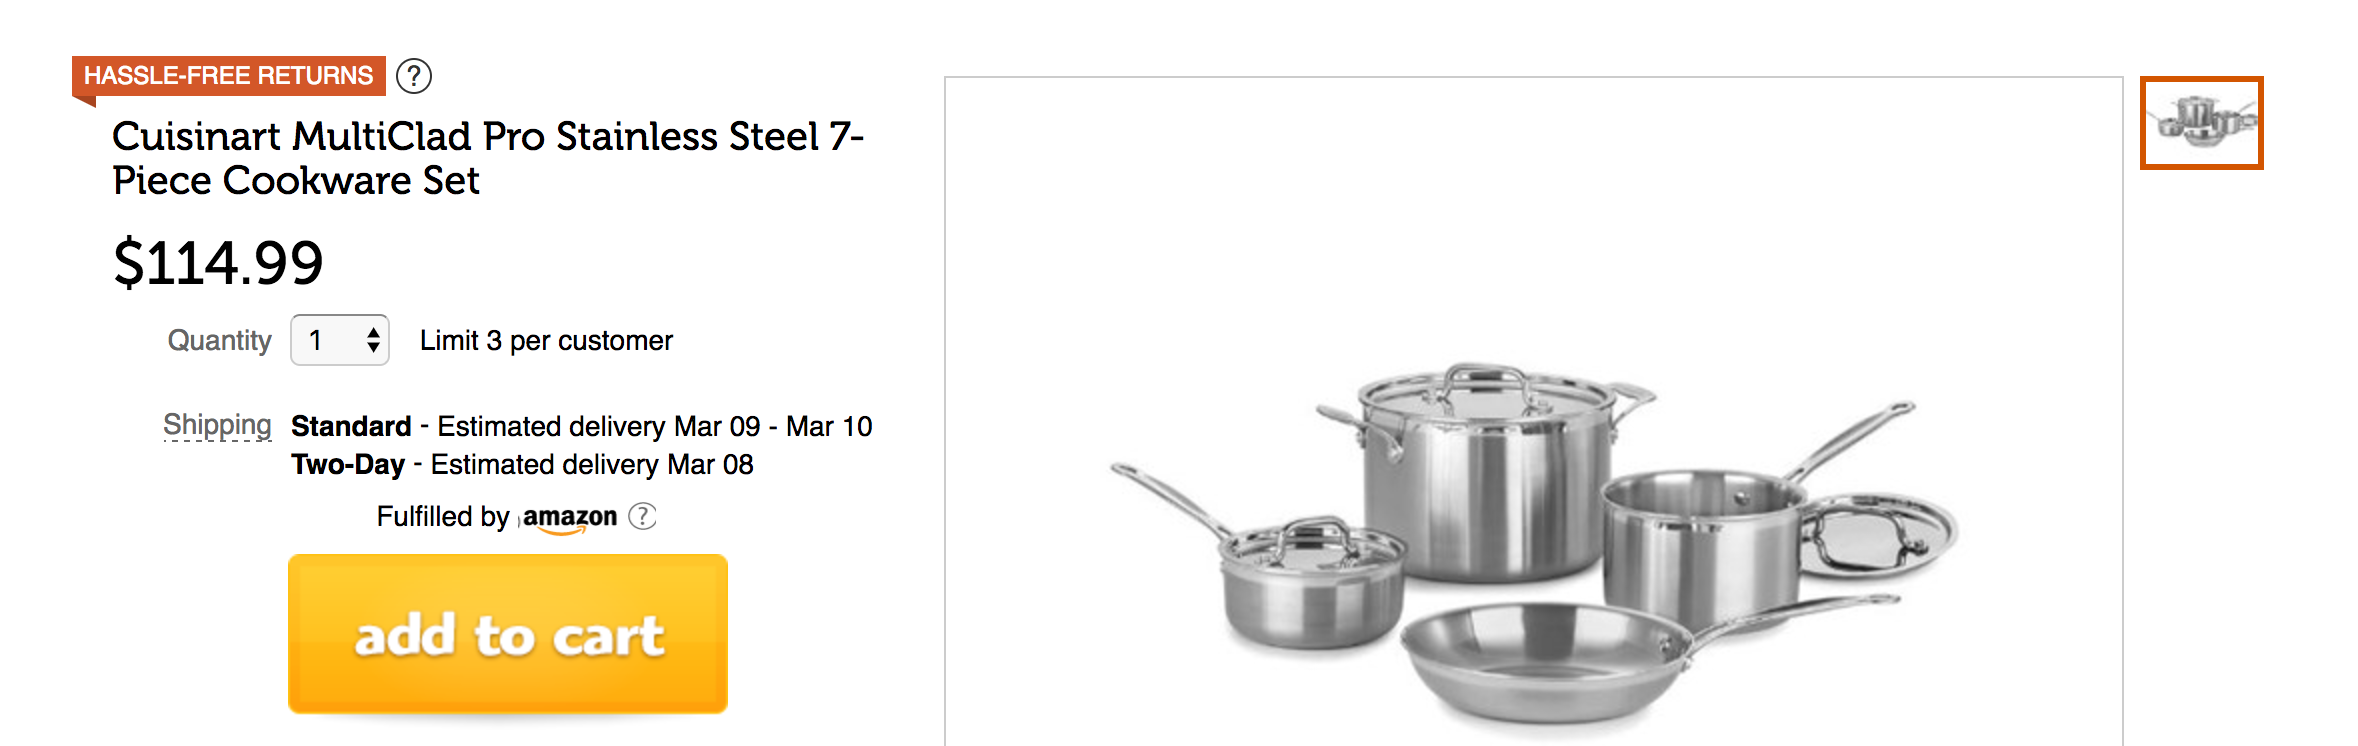 cuisinart-multiclad-pro-stainless-steel-7-piece-cookware-set-3